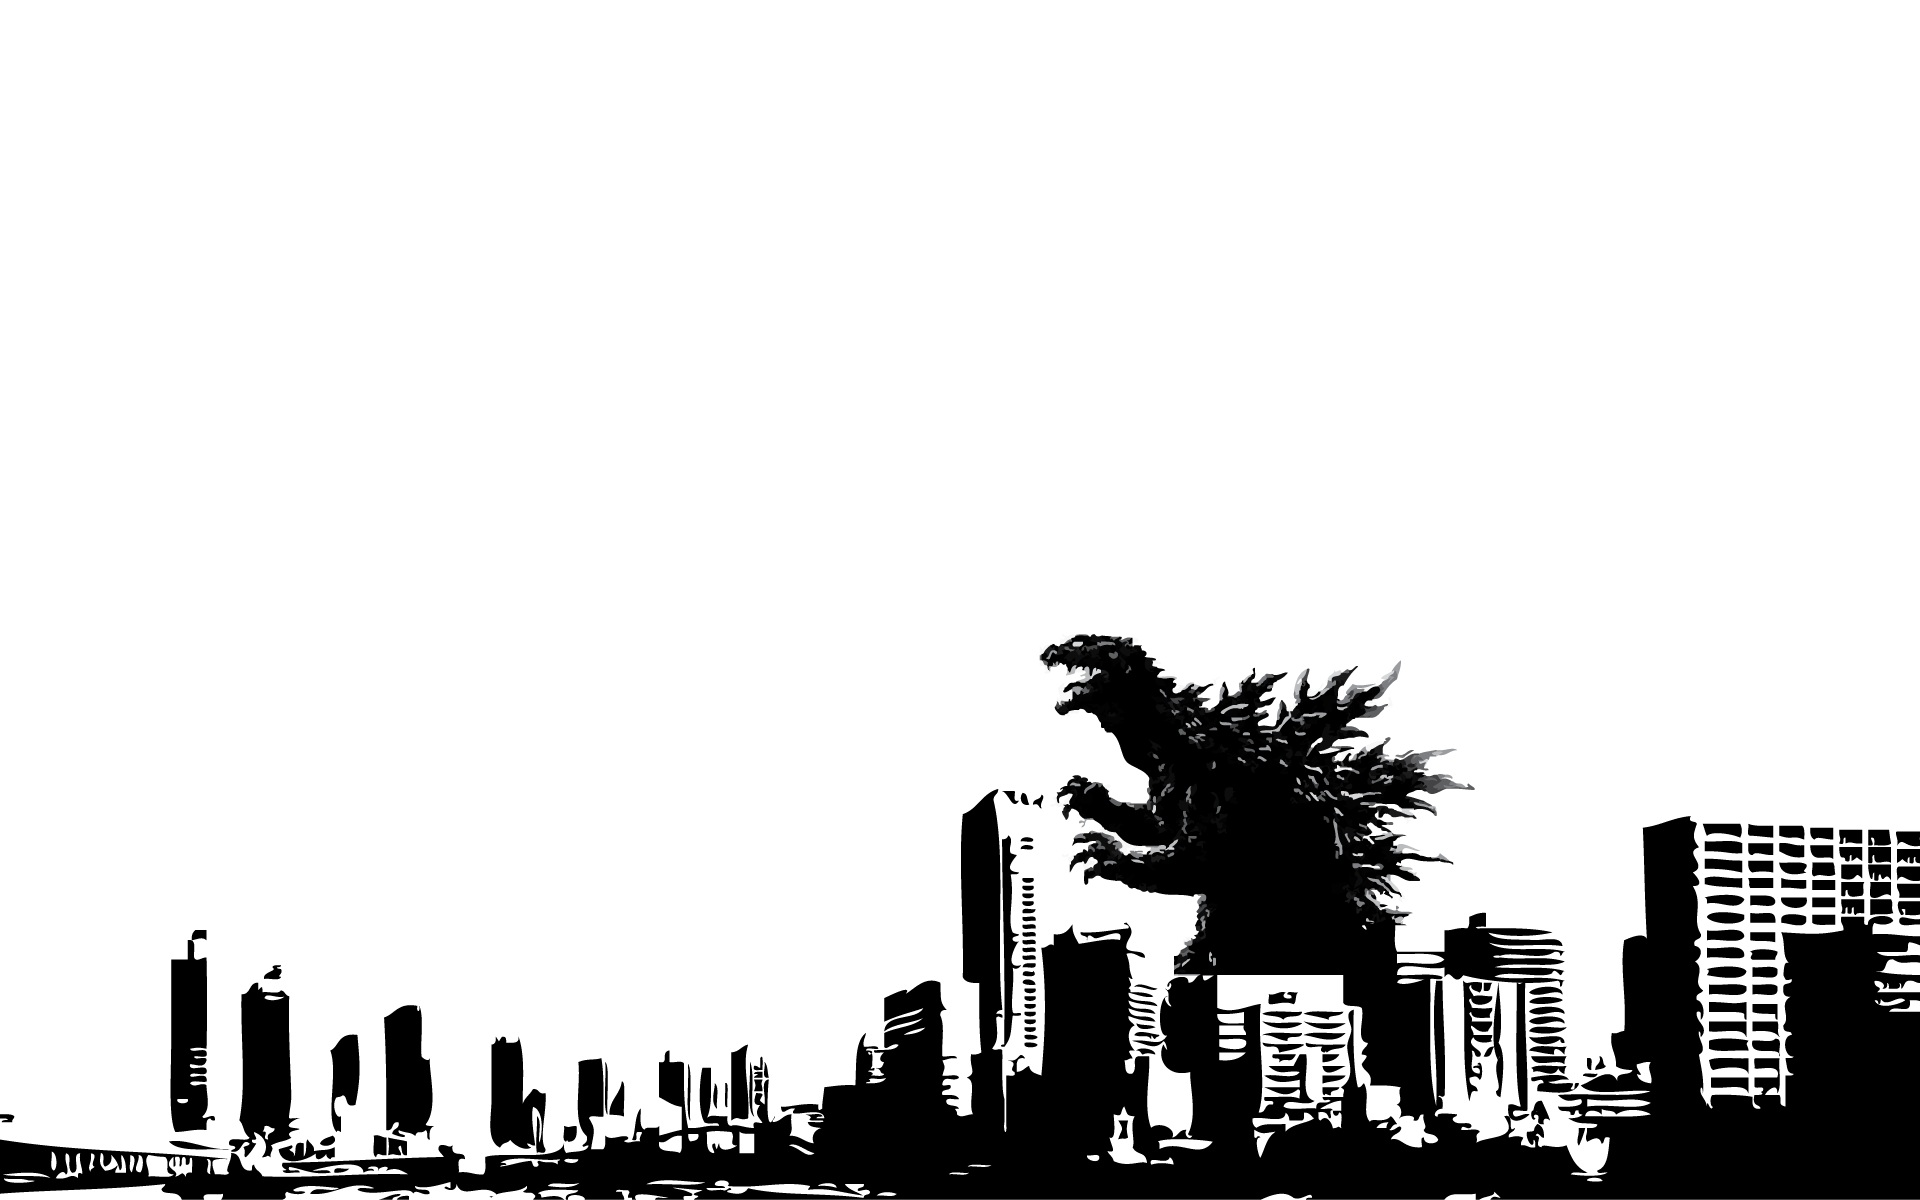 Godzilla Wallpapers HD - WallpaperSafari